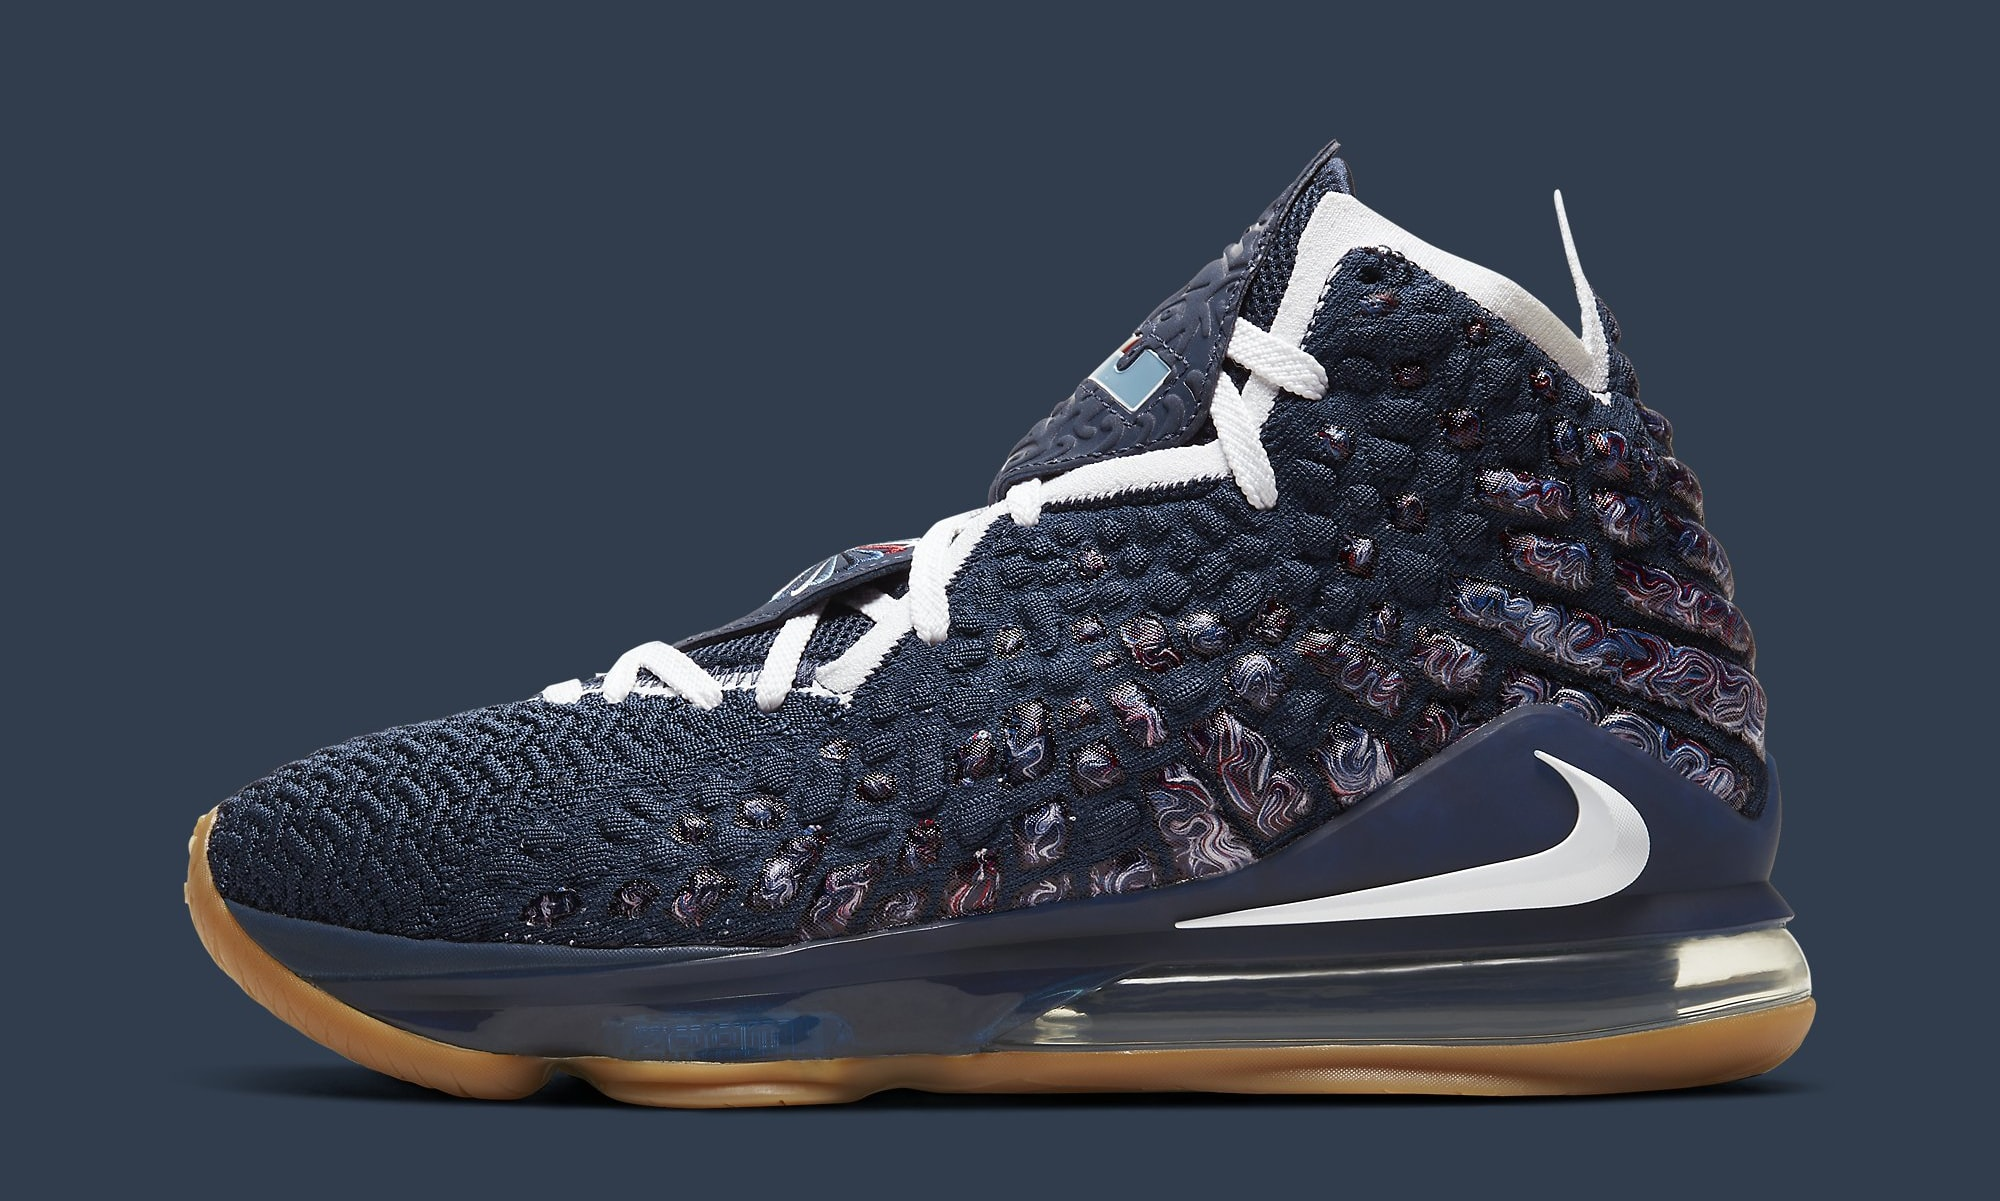 nike-LeBron-17-xvii-college-navy-white-game-royal-CD5056-400-release-date-01